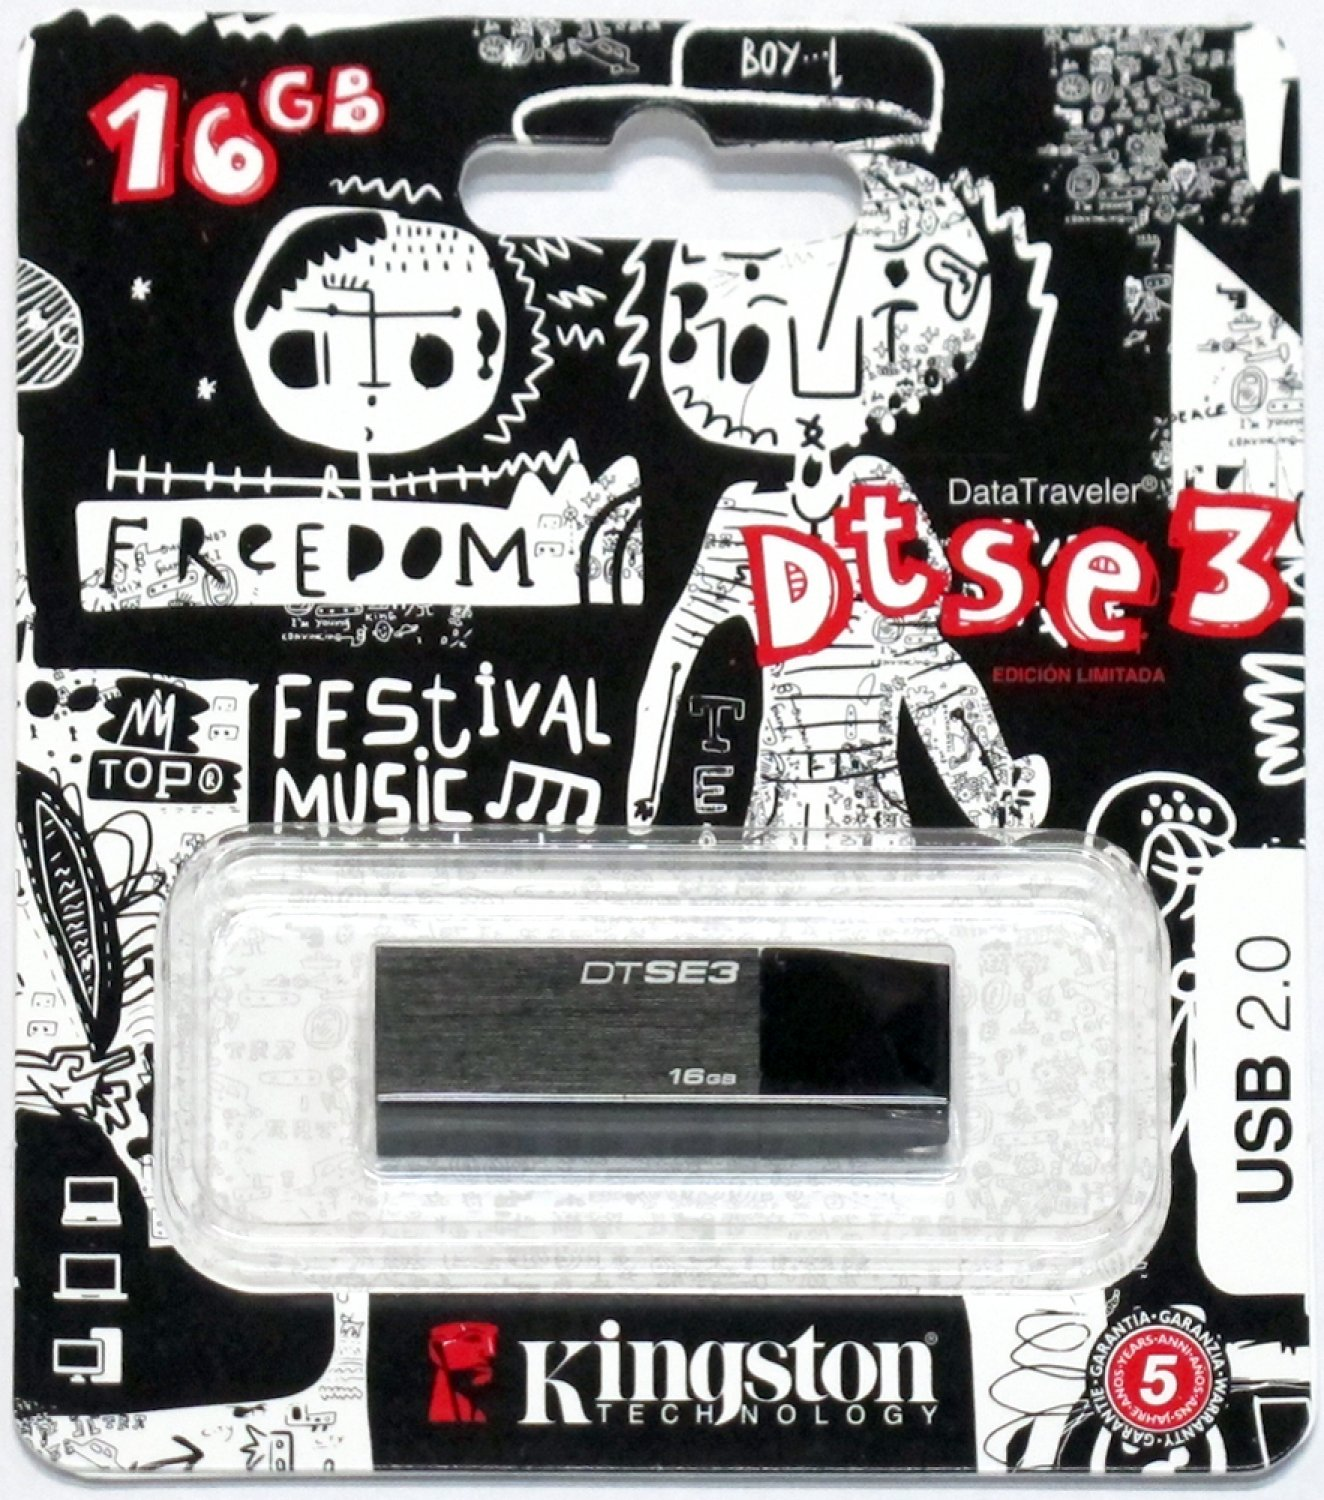 Pendrive Kingston DTSE3 16gb 002